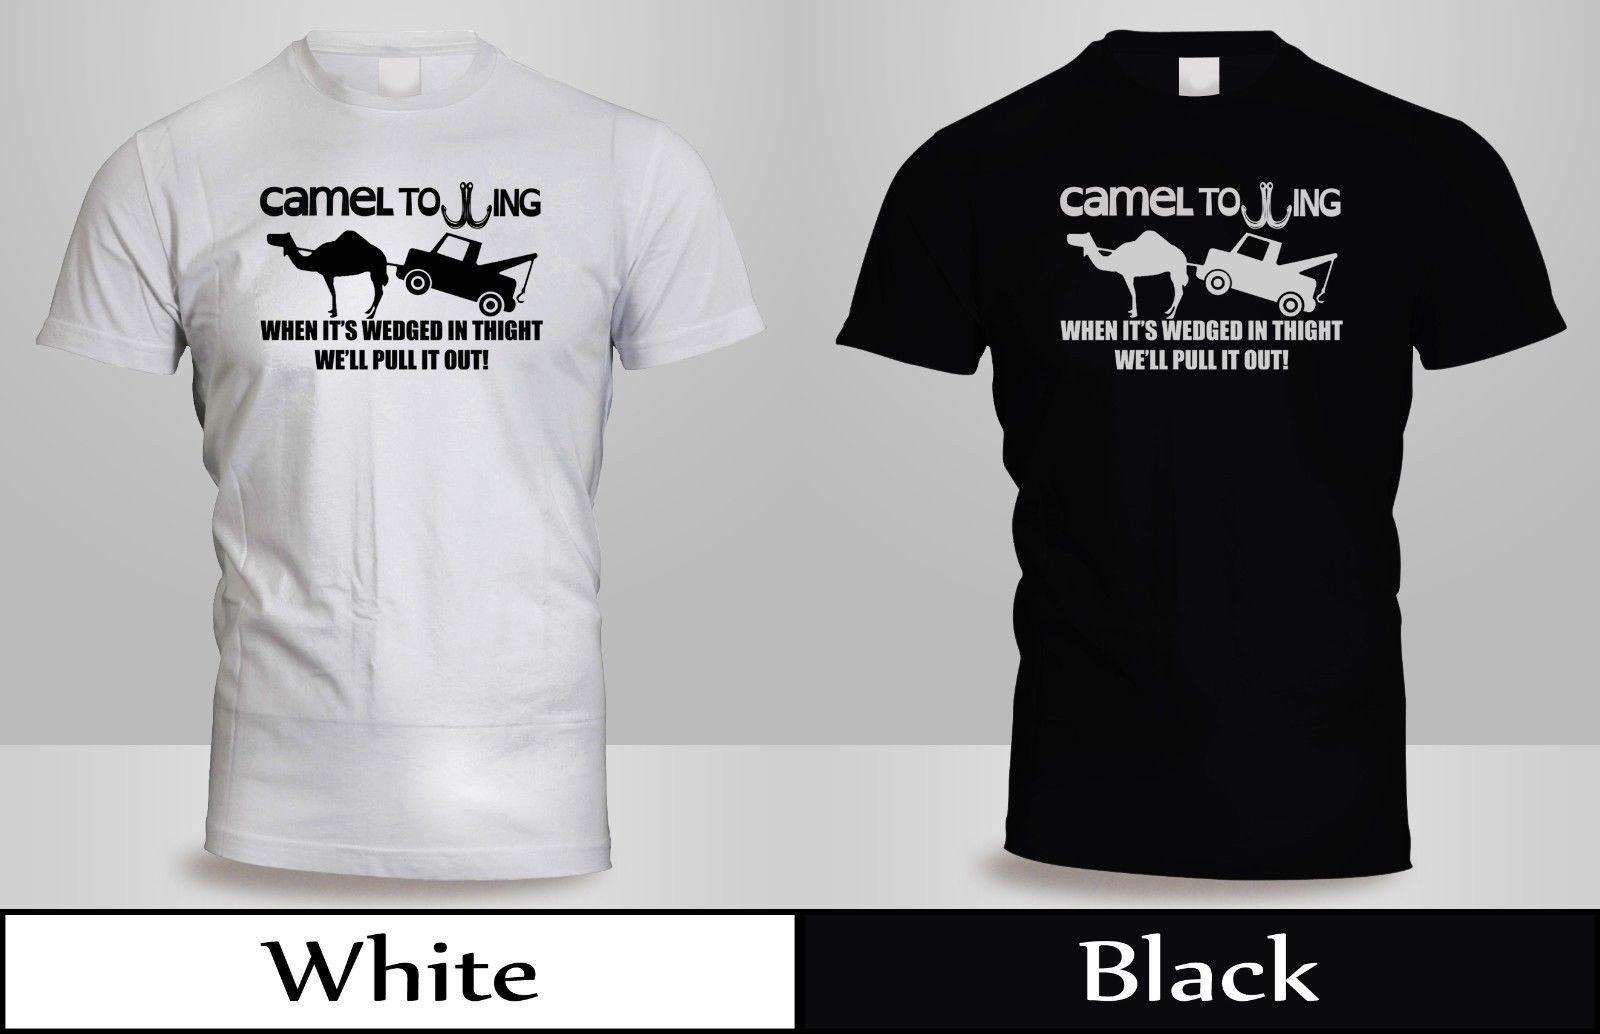 388c7ce59 Camel Towing T Shirt Mens Black&White Tow Service Toe College Humor Cool  Shirt 4Funny Unisex Casual Tshirt Top Cool Tee Shirts Cool Tees From  Lazyfruit, ...